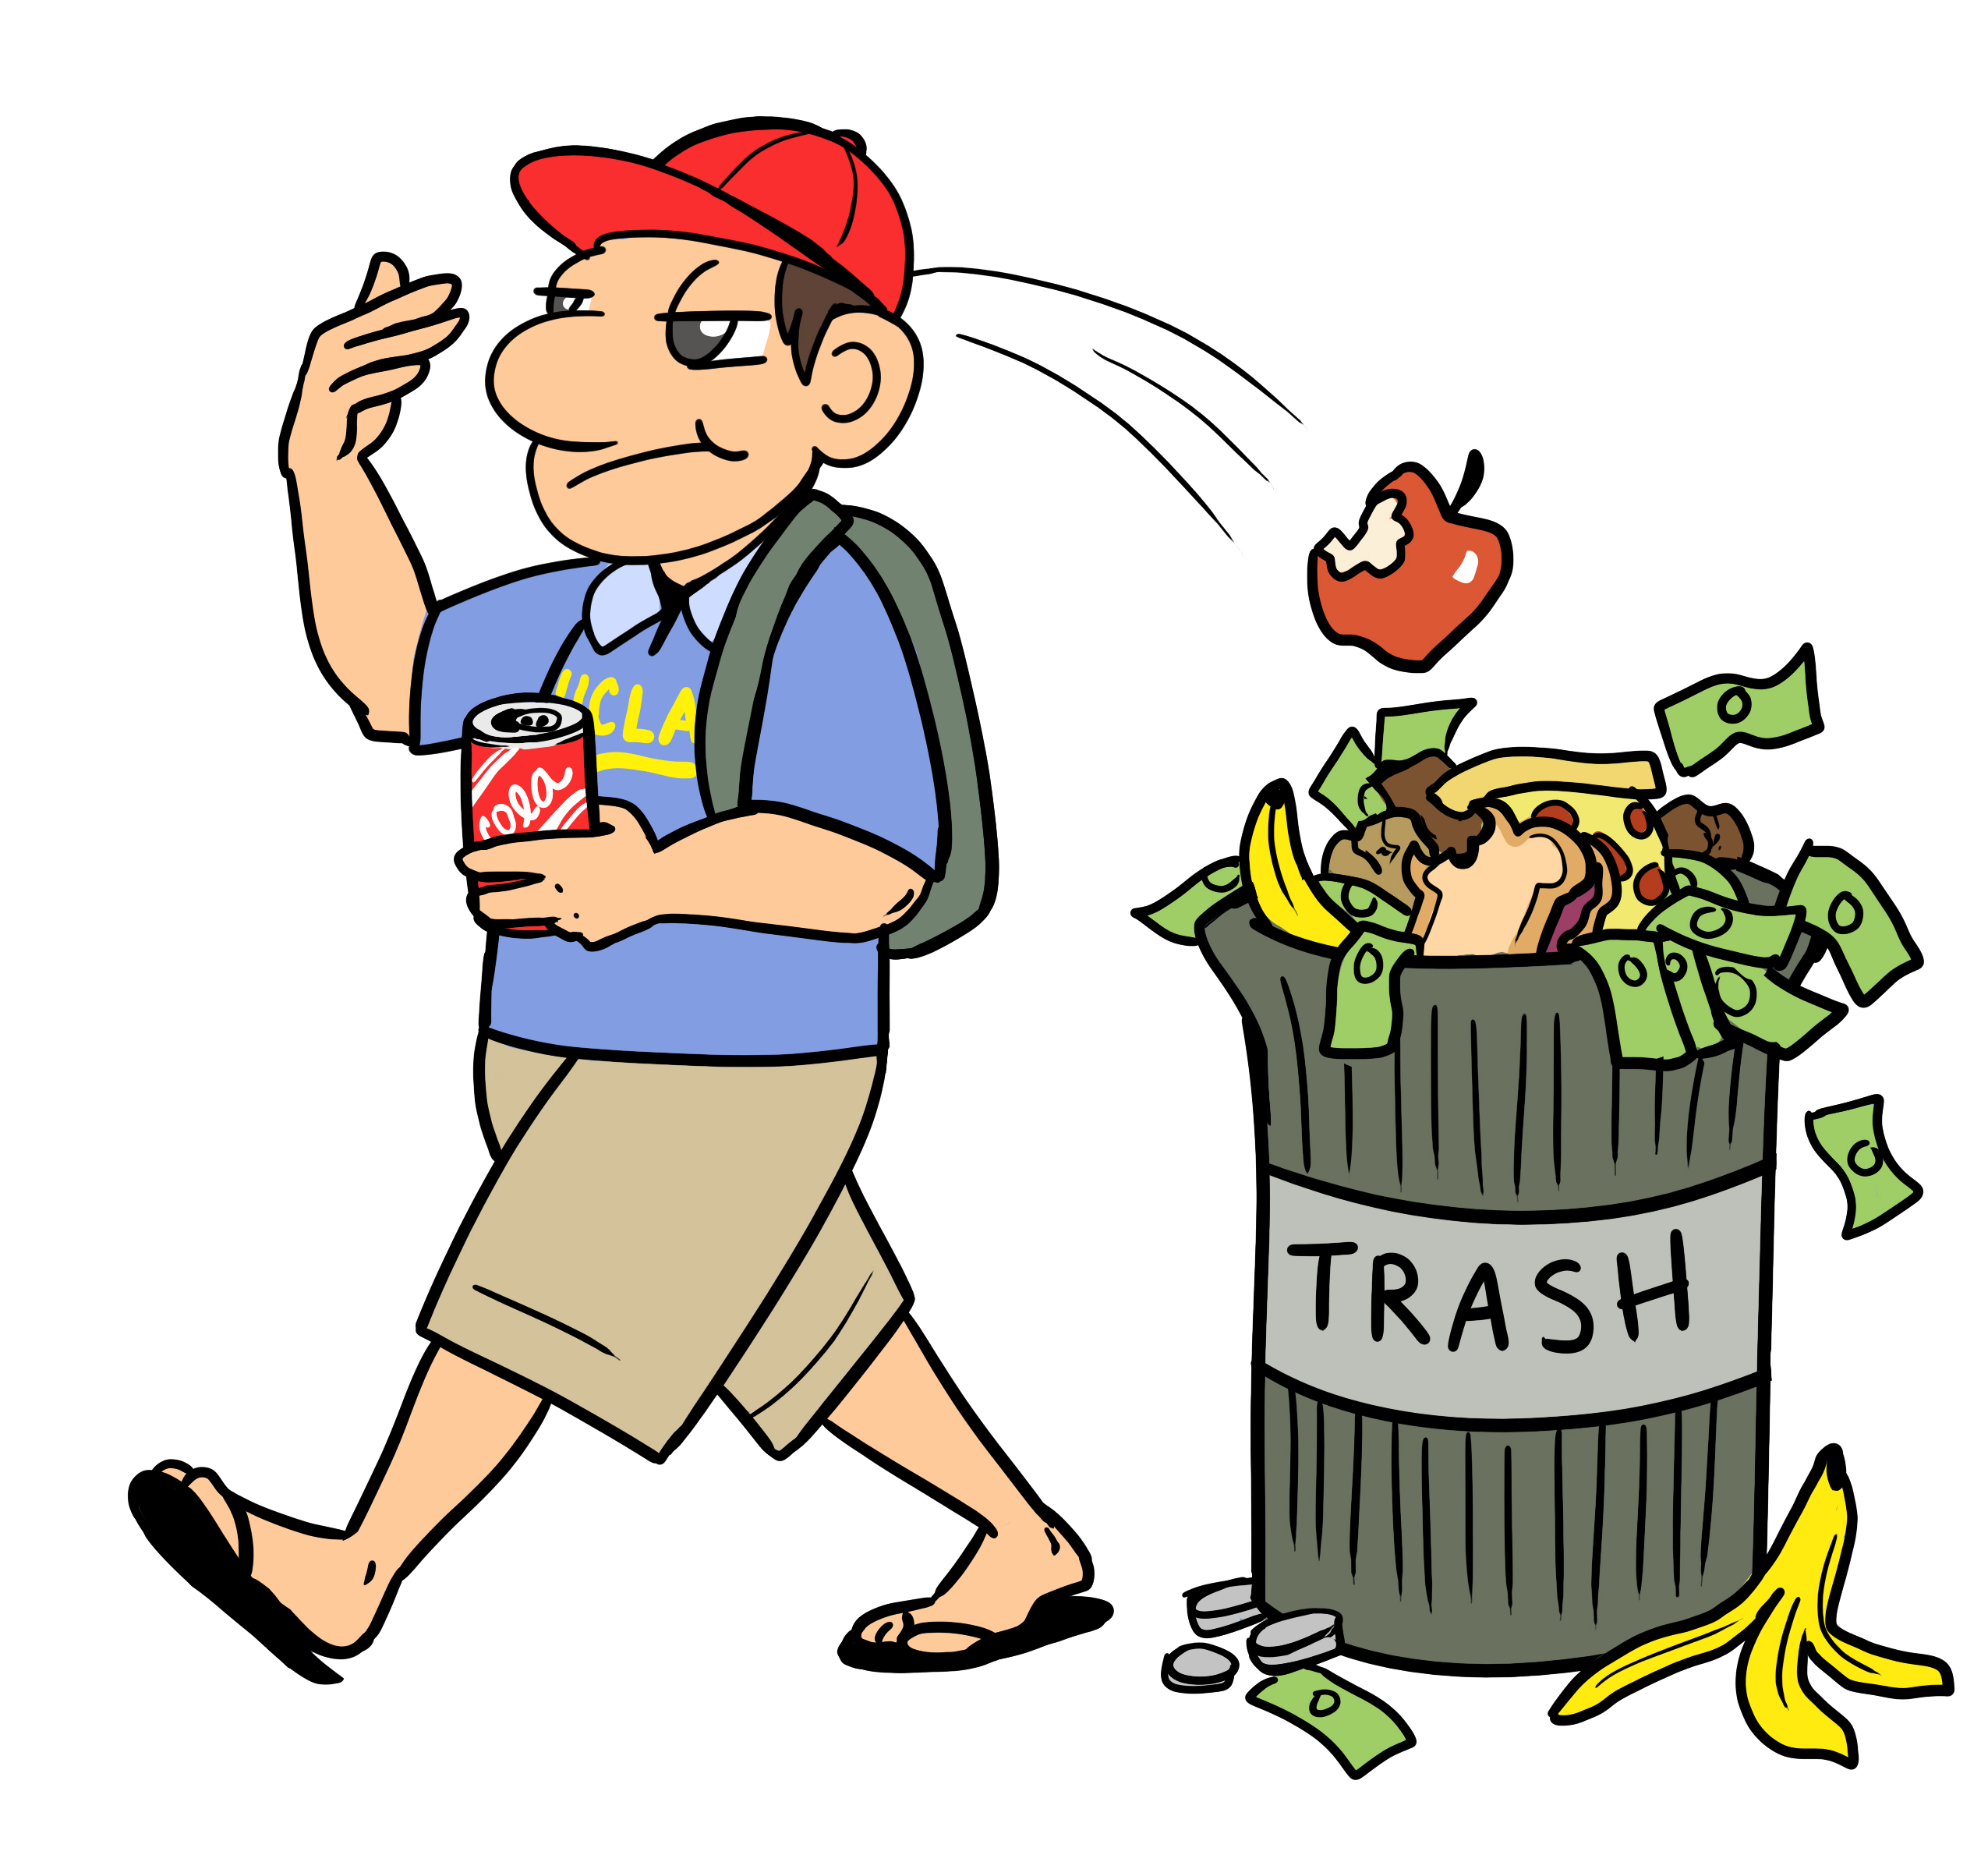 garbage clipart at getdrawings com free for personal use garbage rh getdrawings com garbage clipart garbage clipart png